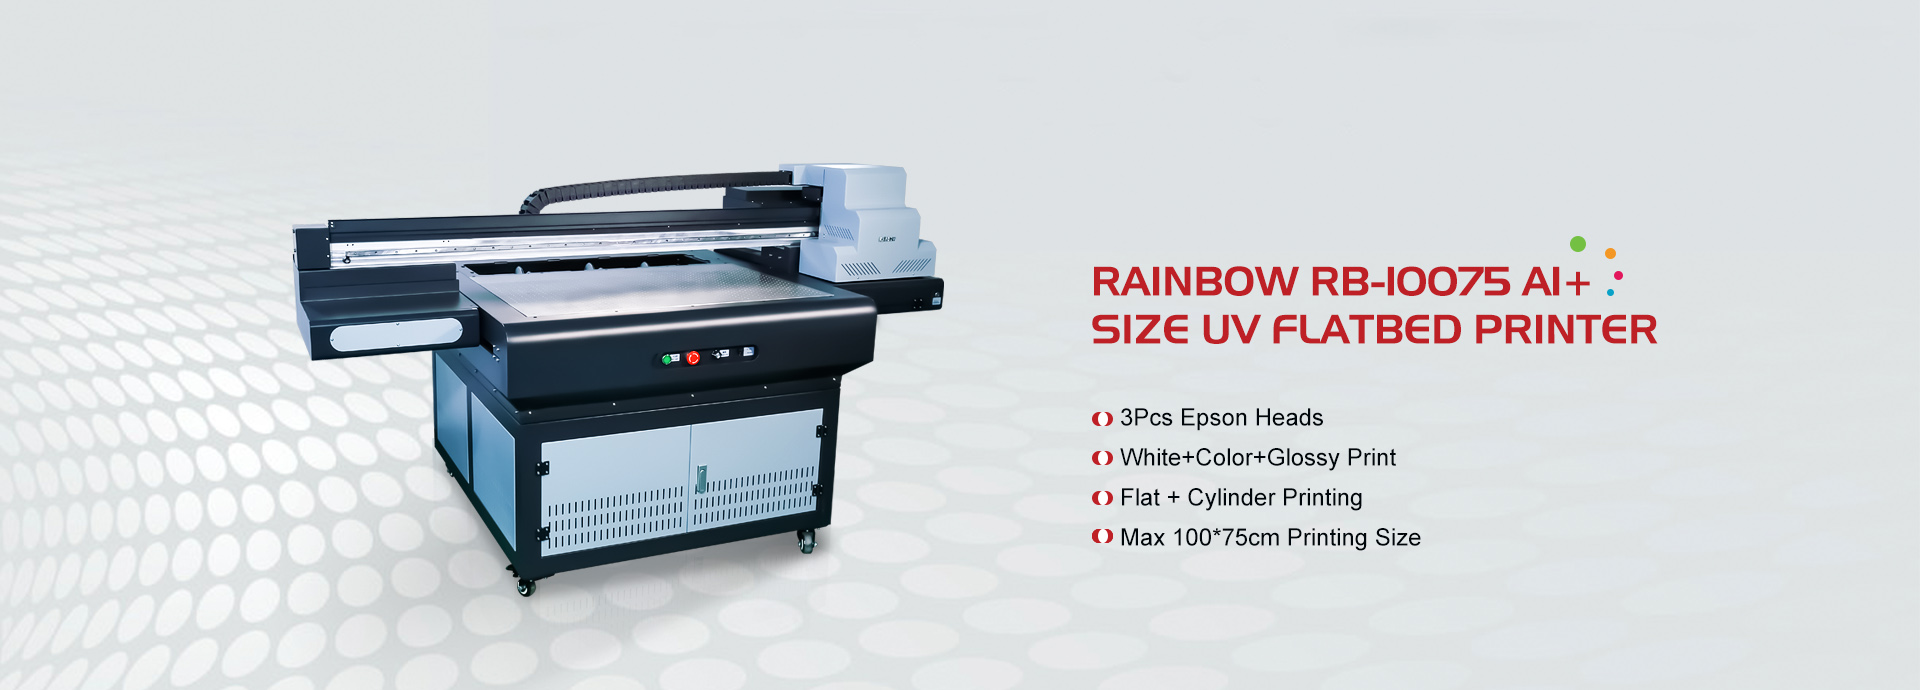 UV Flatbed Printer machina